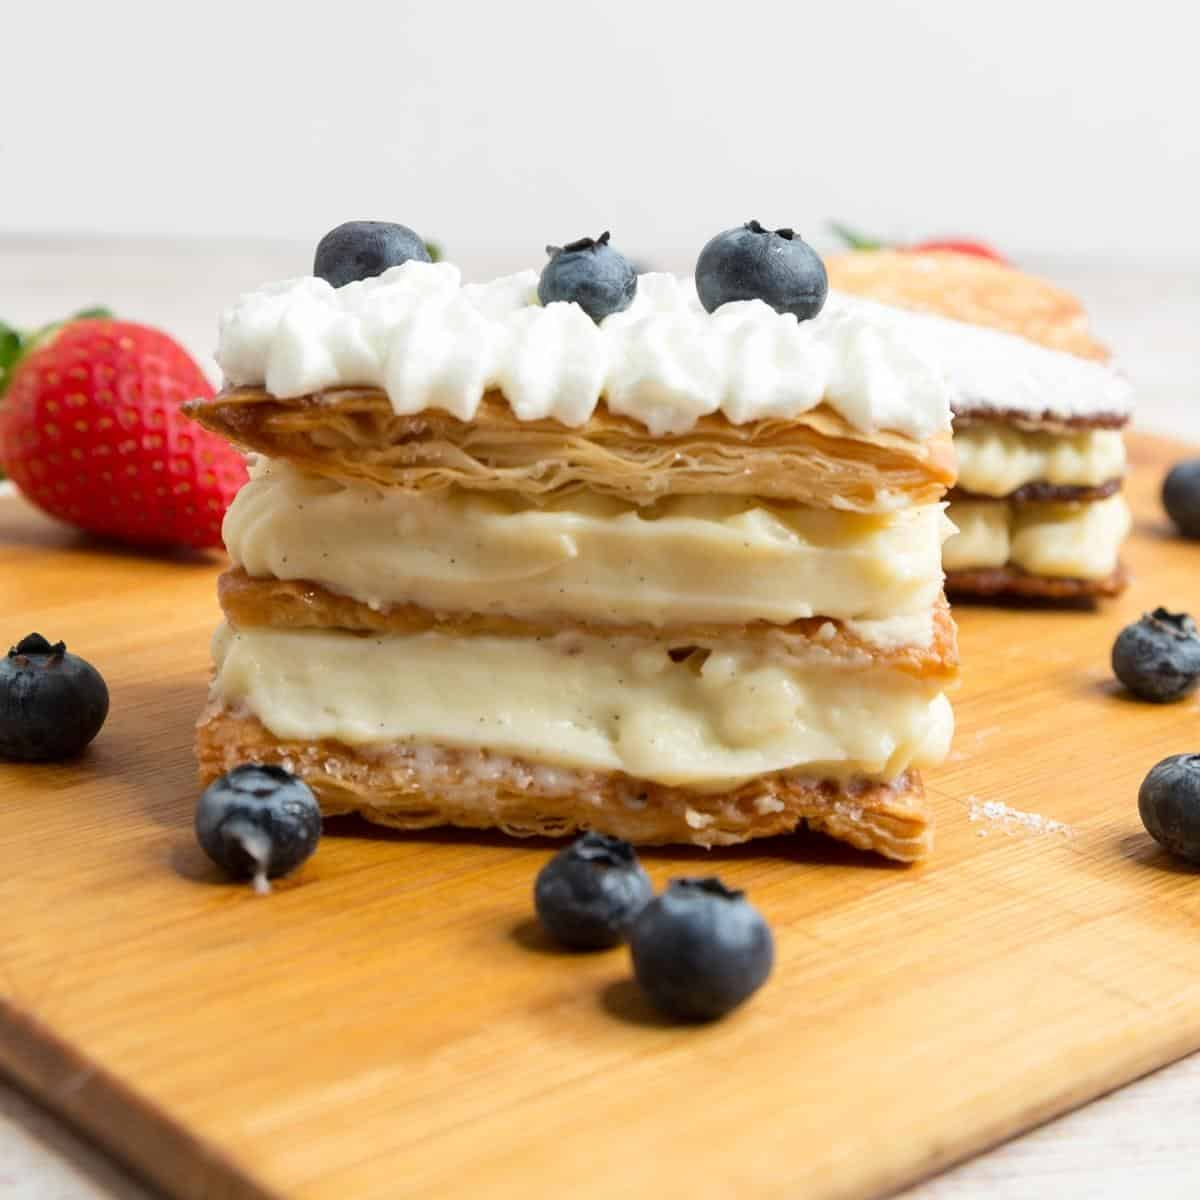 A layered puff pastry desserts Napoleon